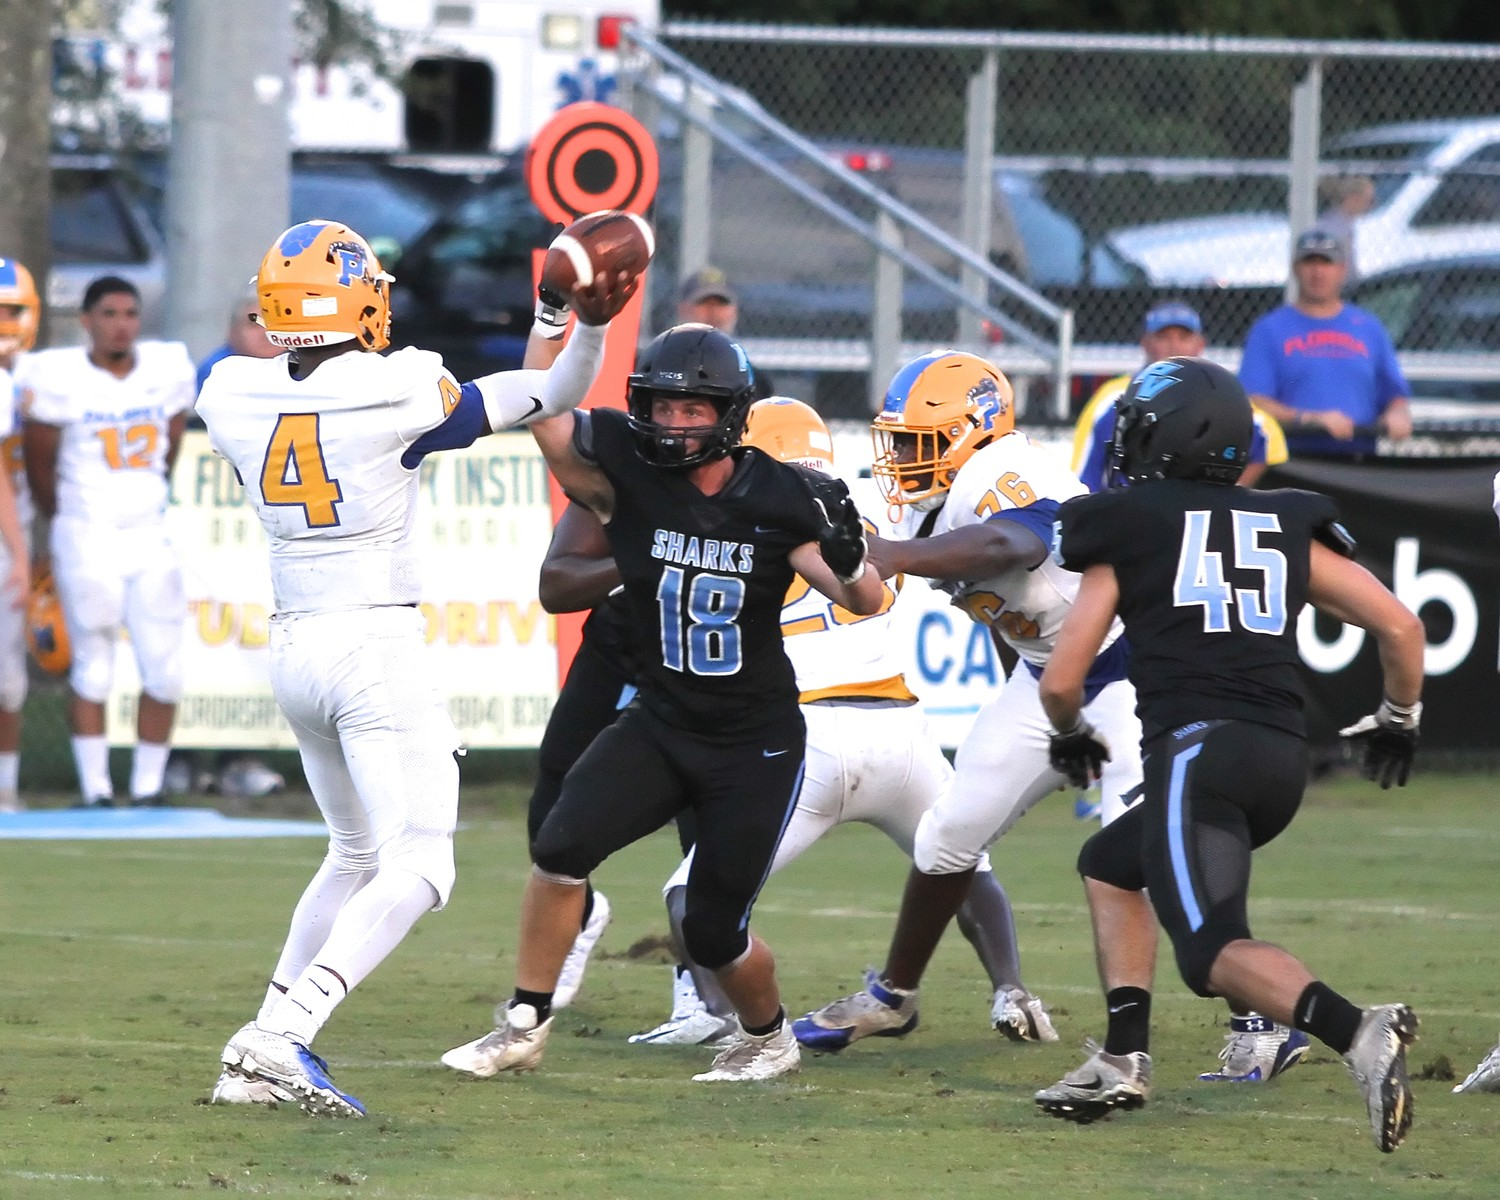 Ponte Vedra defensive lineman Peter Merlini puts pressure on Palatka's quarterback during the Sharks' 39-26 win over the Panthers.